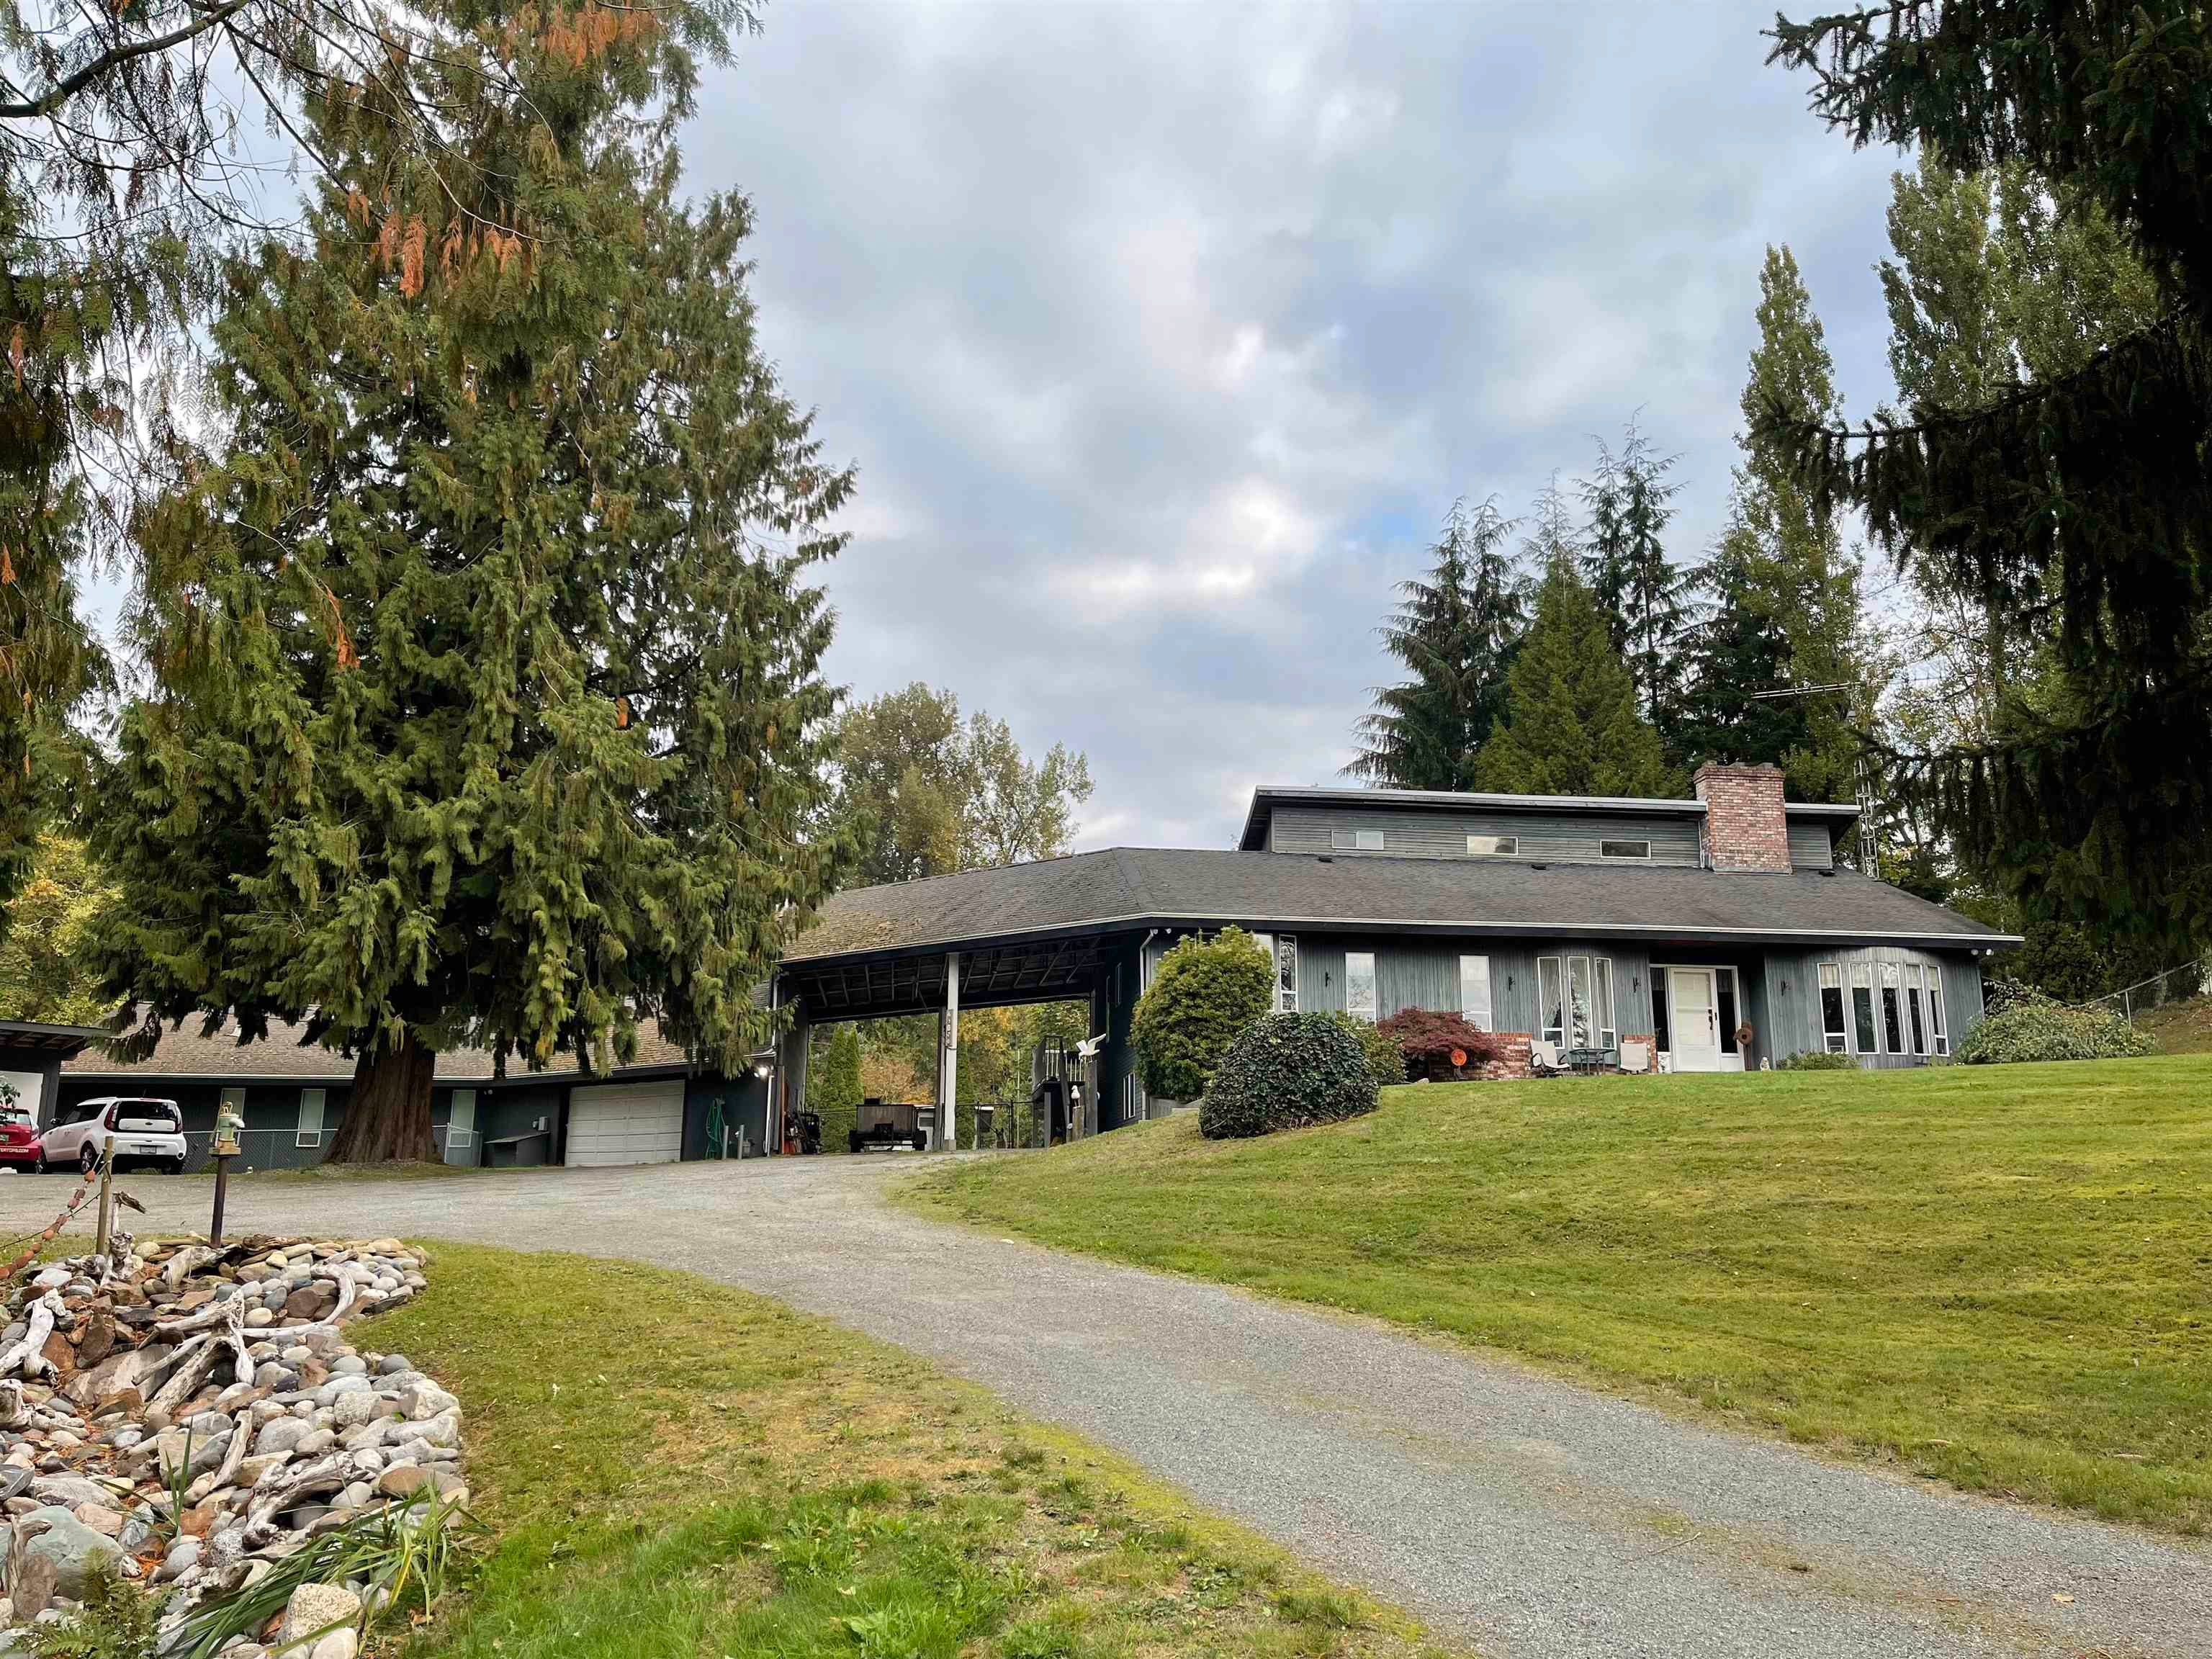 """Main Photo: 26153 4 Avenue in Langley: Otter District House for sale in """"OTTER DISTRICT"""" : MLS®# R2623307"""